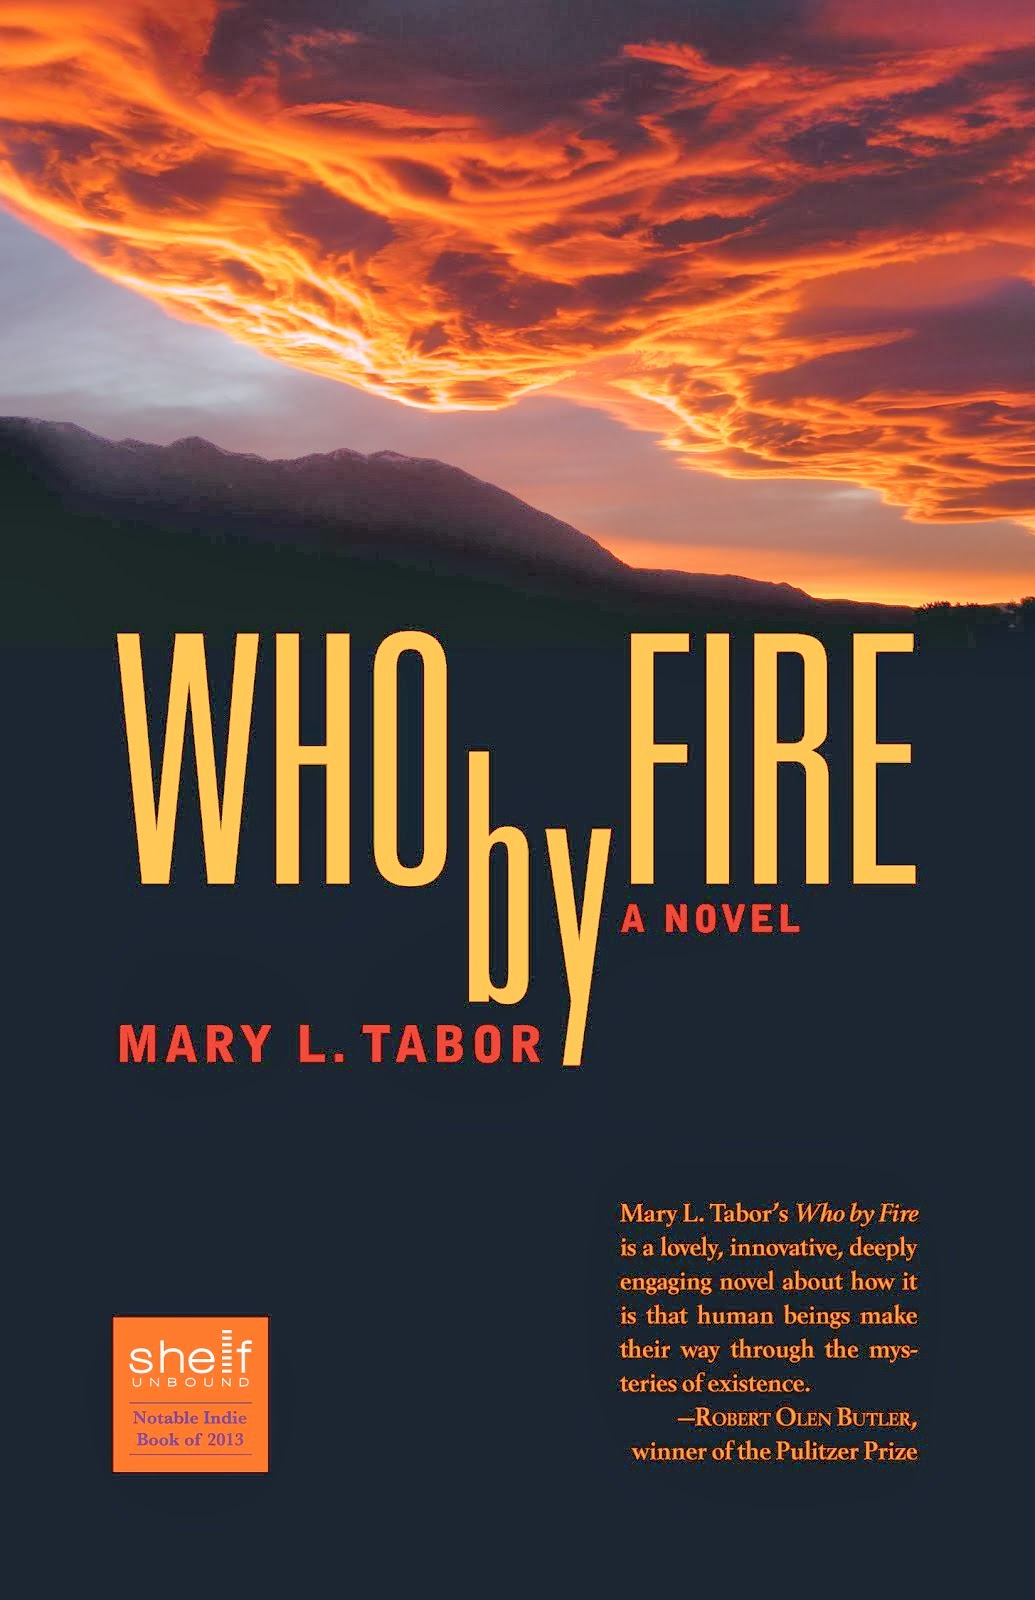 Who By Fire: a novel by Mary L. Tabor